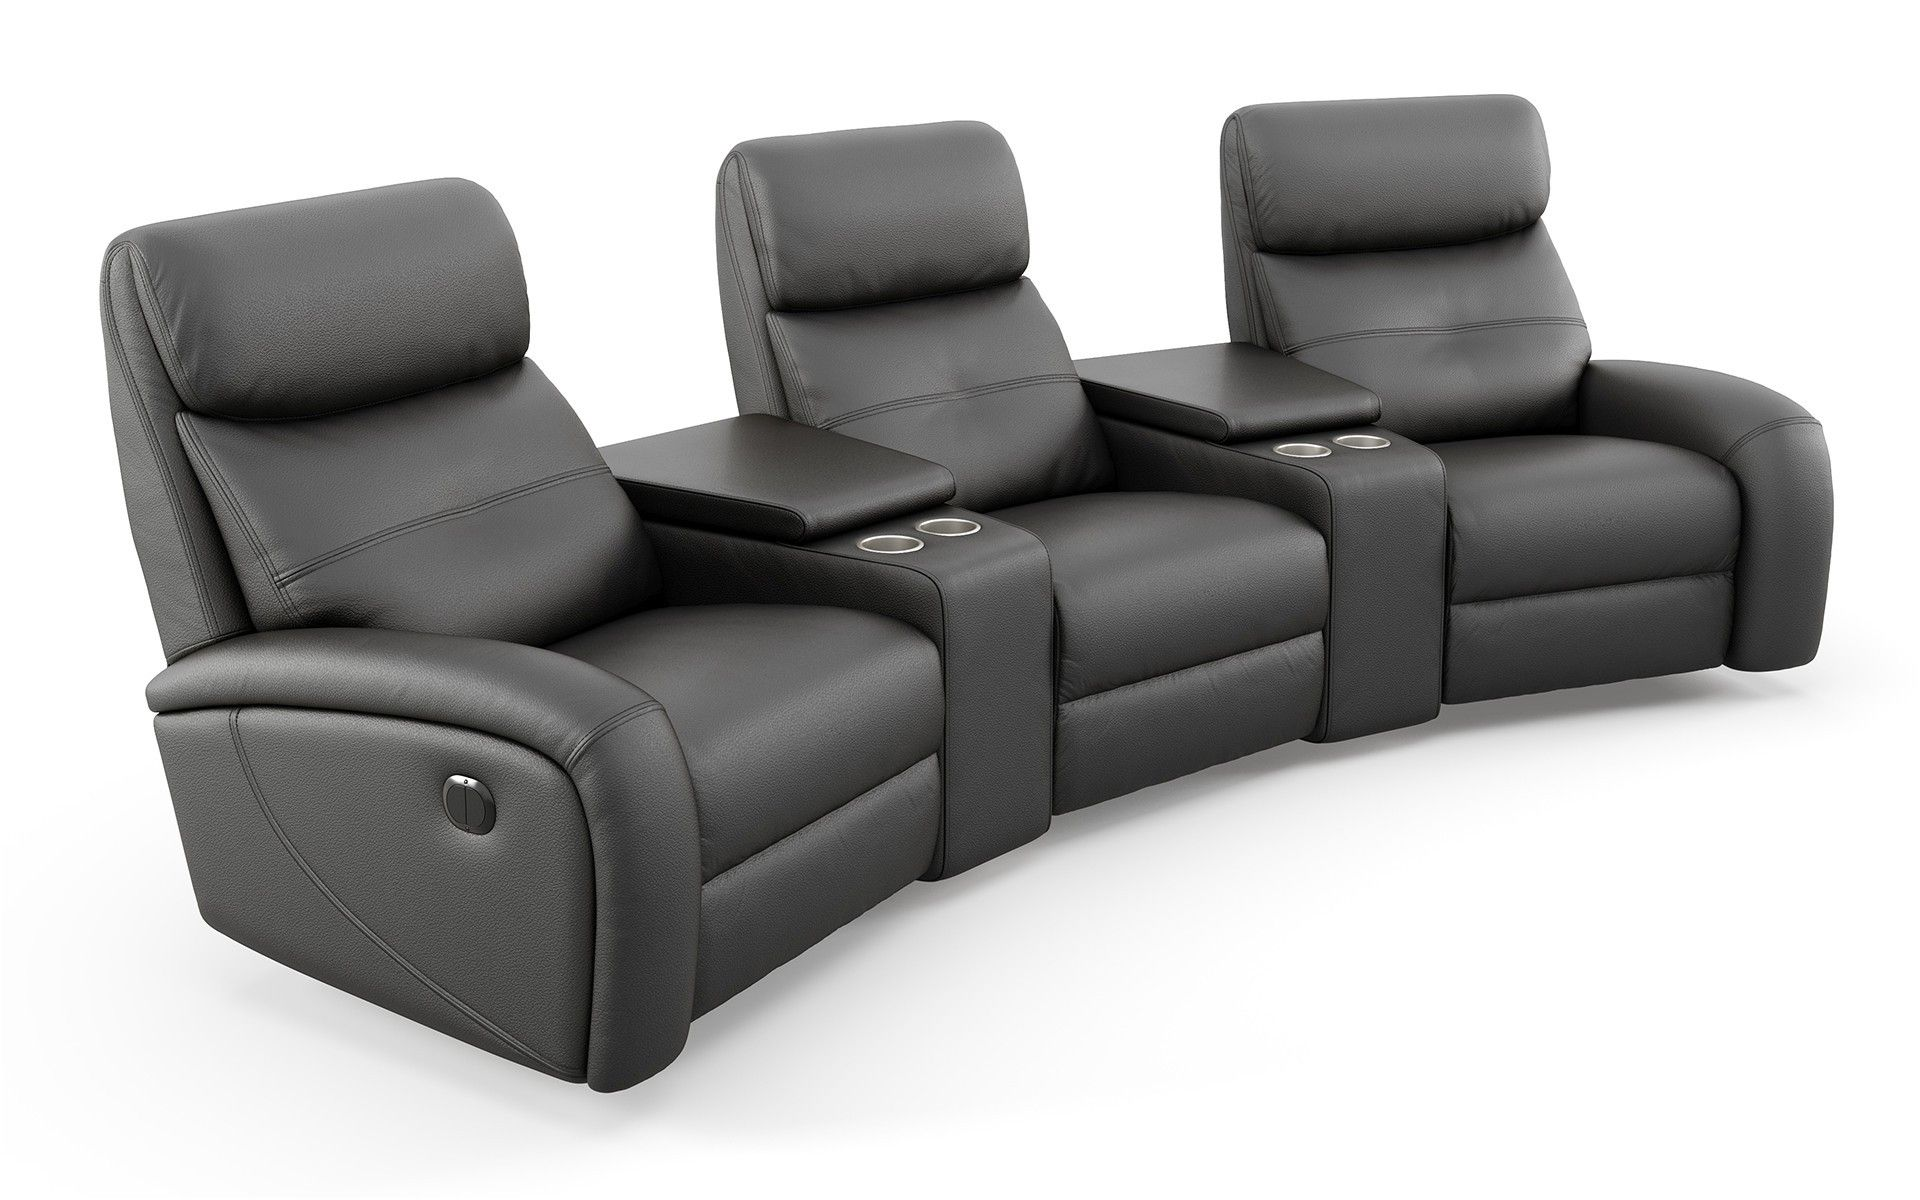 Full Size of Heimkino Sofa Sessel Funktionelle Polstermbel Mit Funktion Konfigurator Wk Kolonialstil Benz 2 Sitzer Rahaus Xora Wohnlandschaft Bezug Ecksofa Ottomane Inhofer Sofa Heimkino Sofa